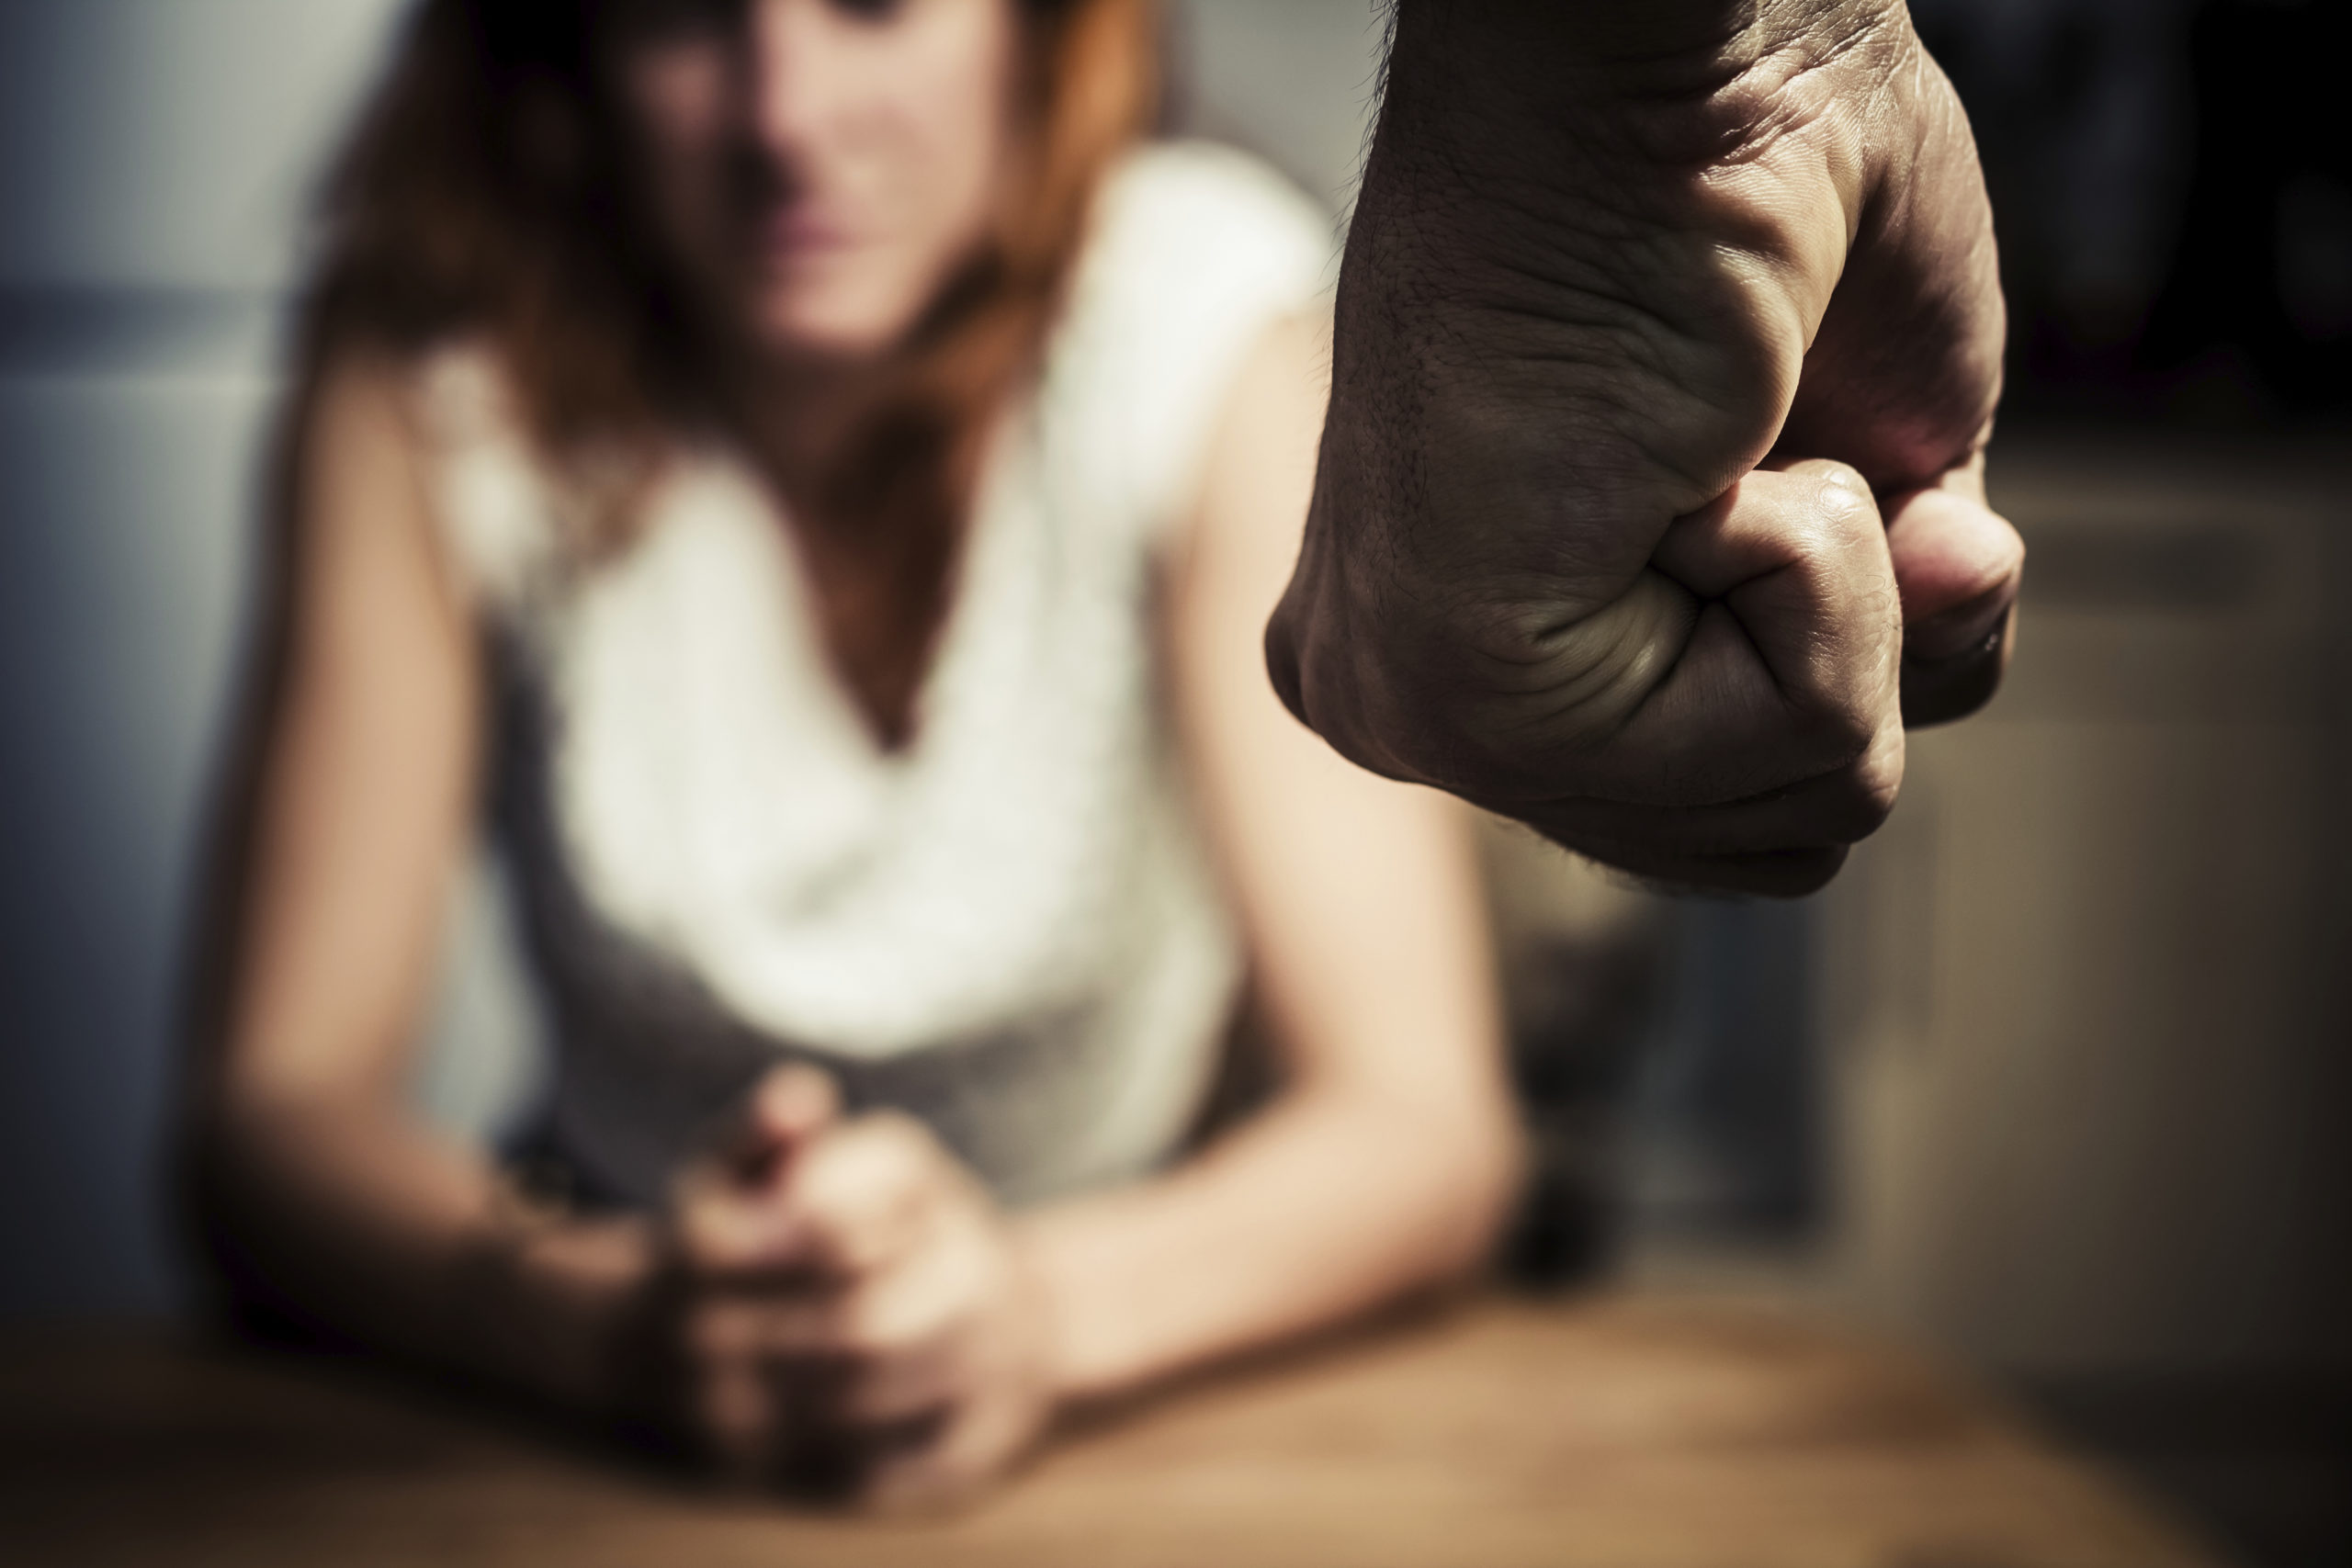 How to Get Out from the Physical and Verbal Abuse in a Marriage